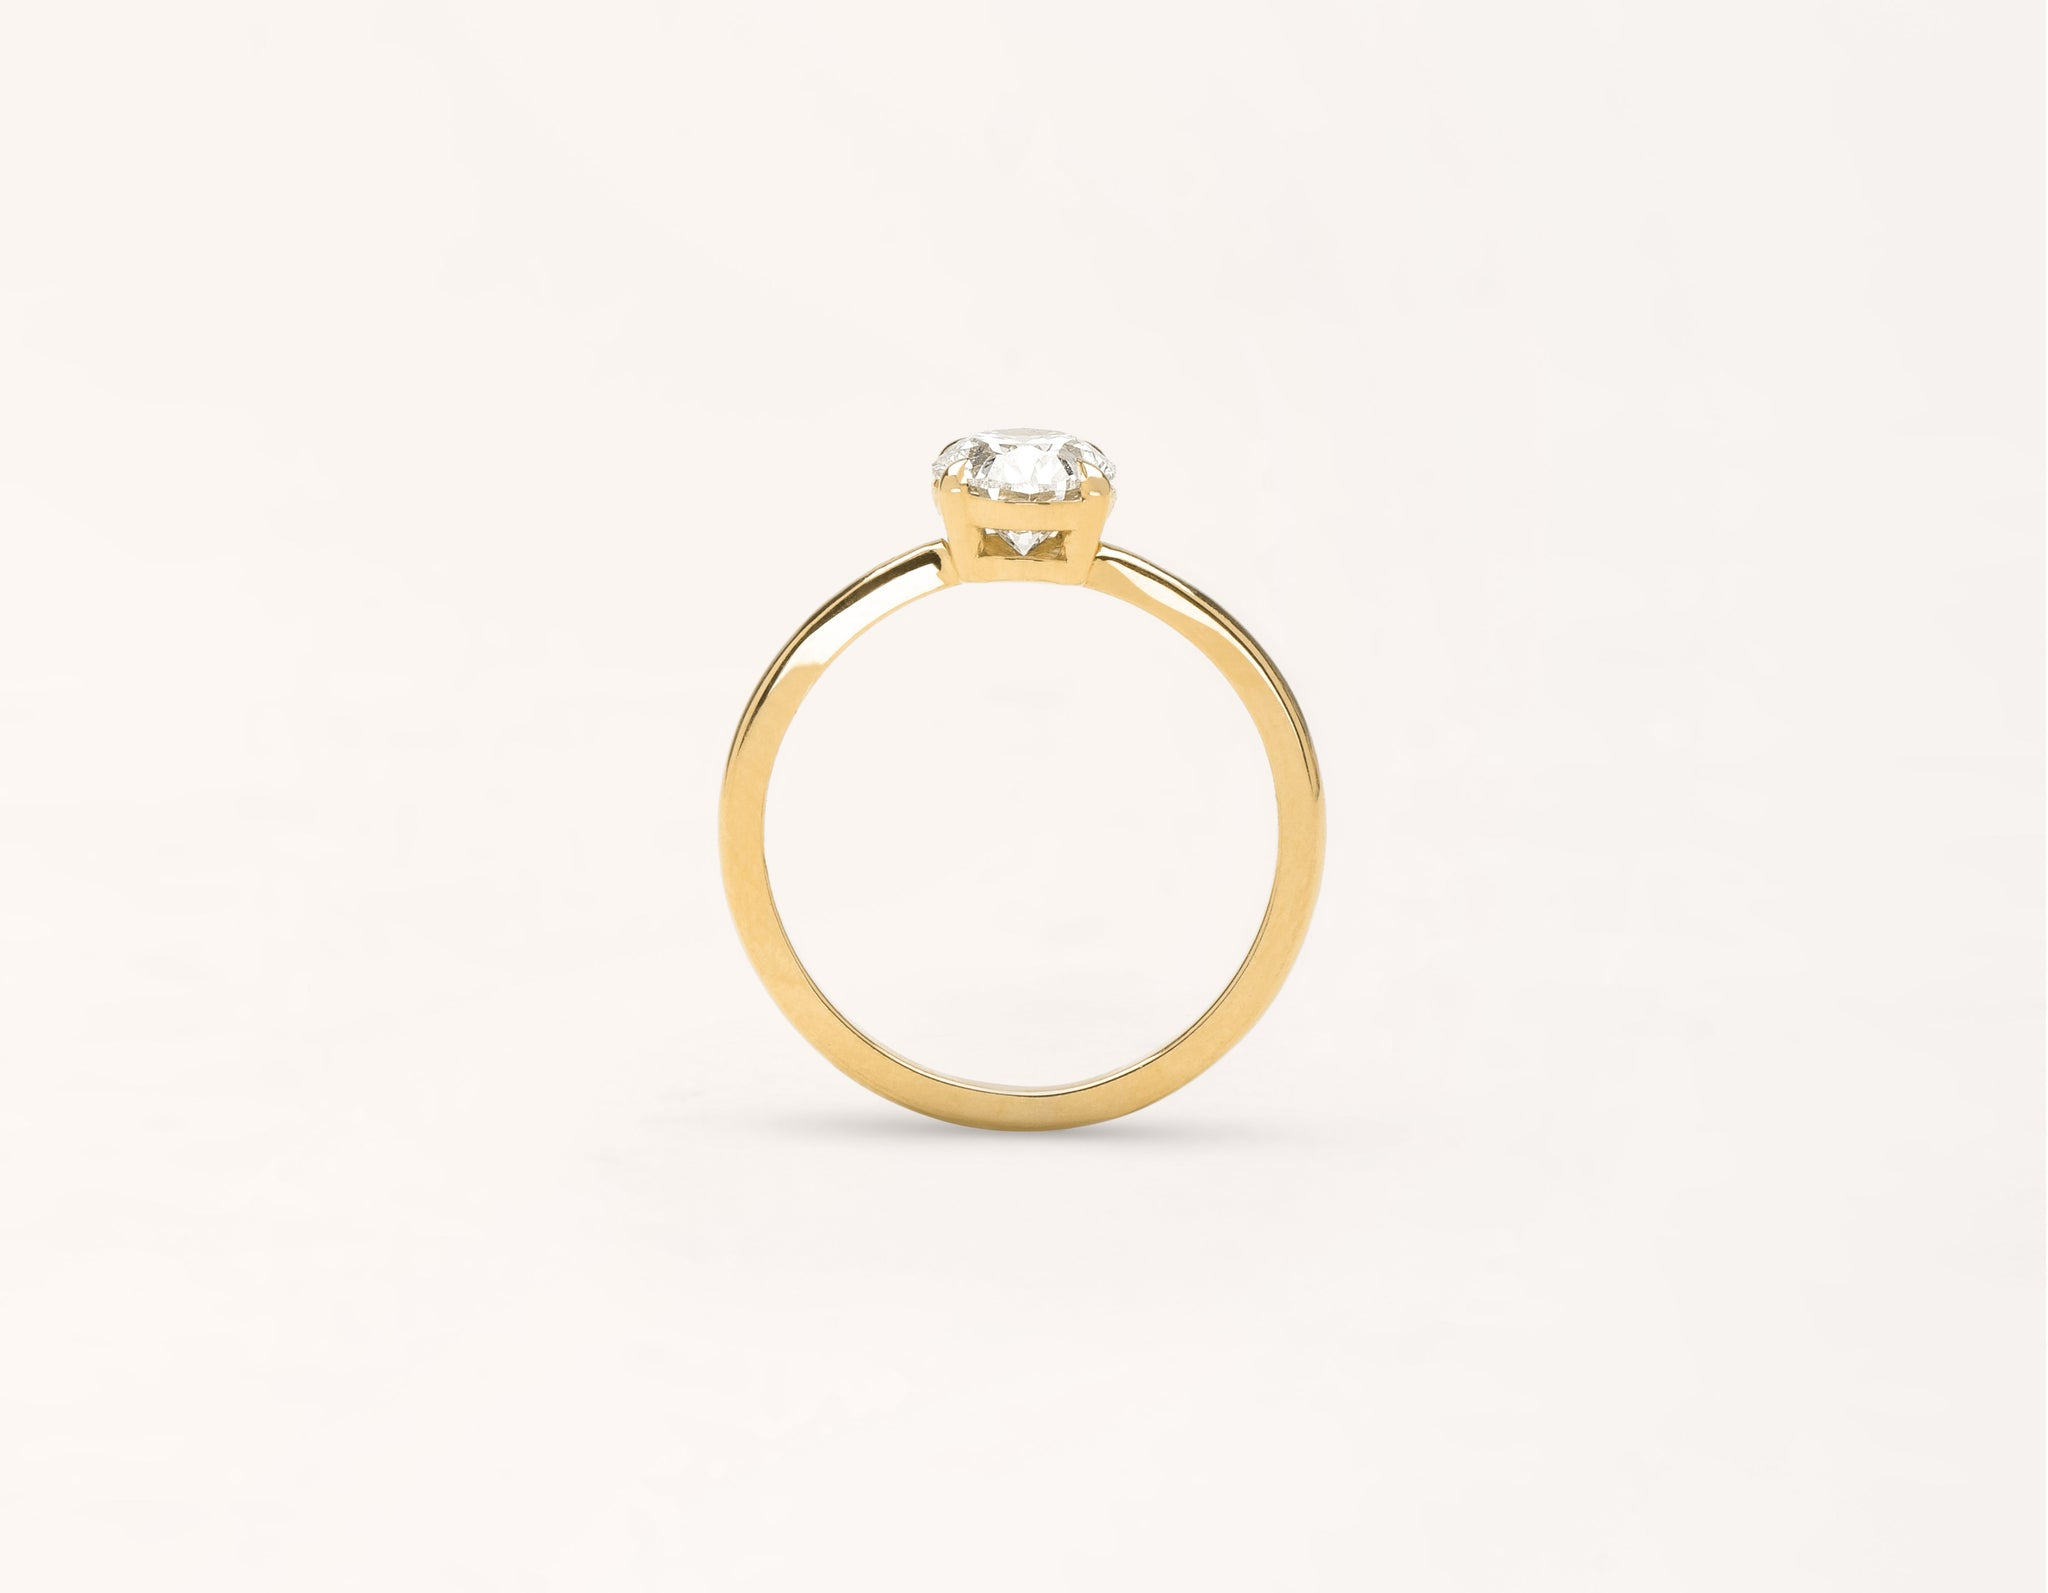 Vrai and Oro modern classic The Oval diamond engagement ring 18k solid yellow gold sustainable jewelry